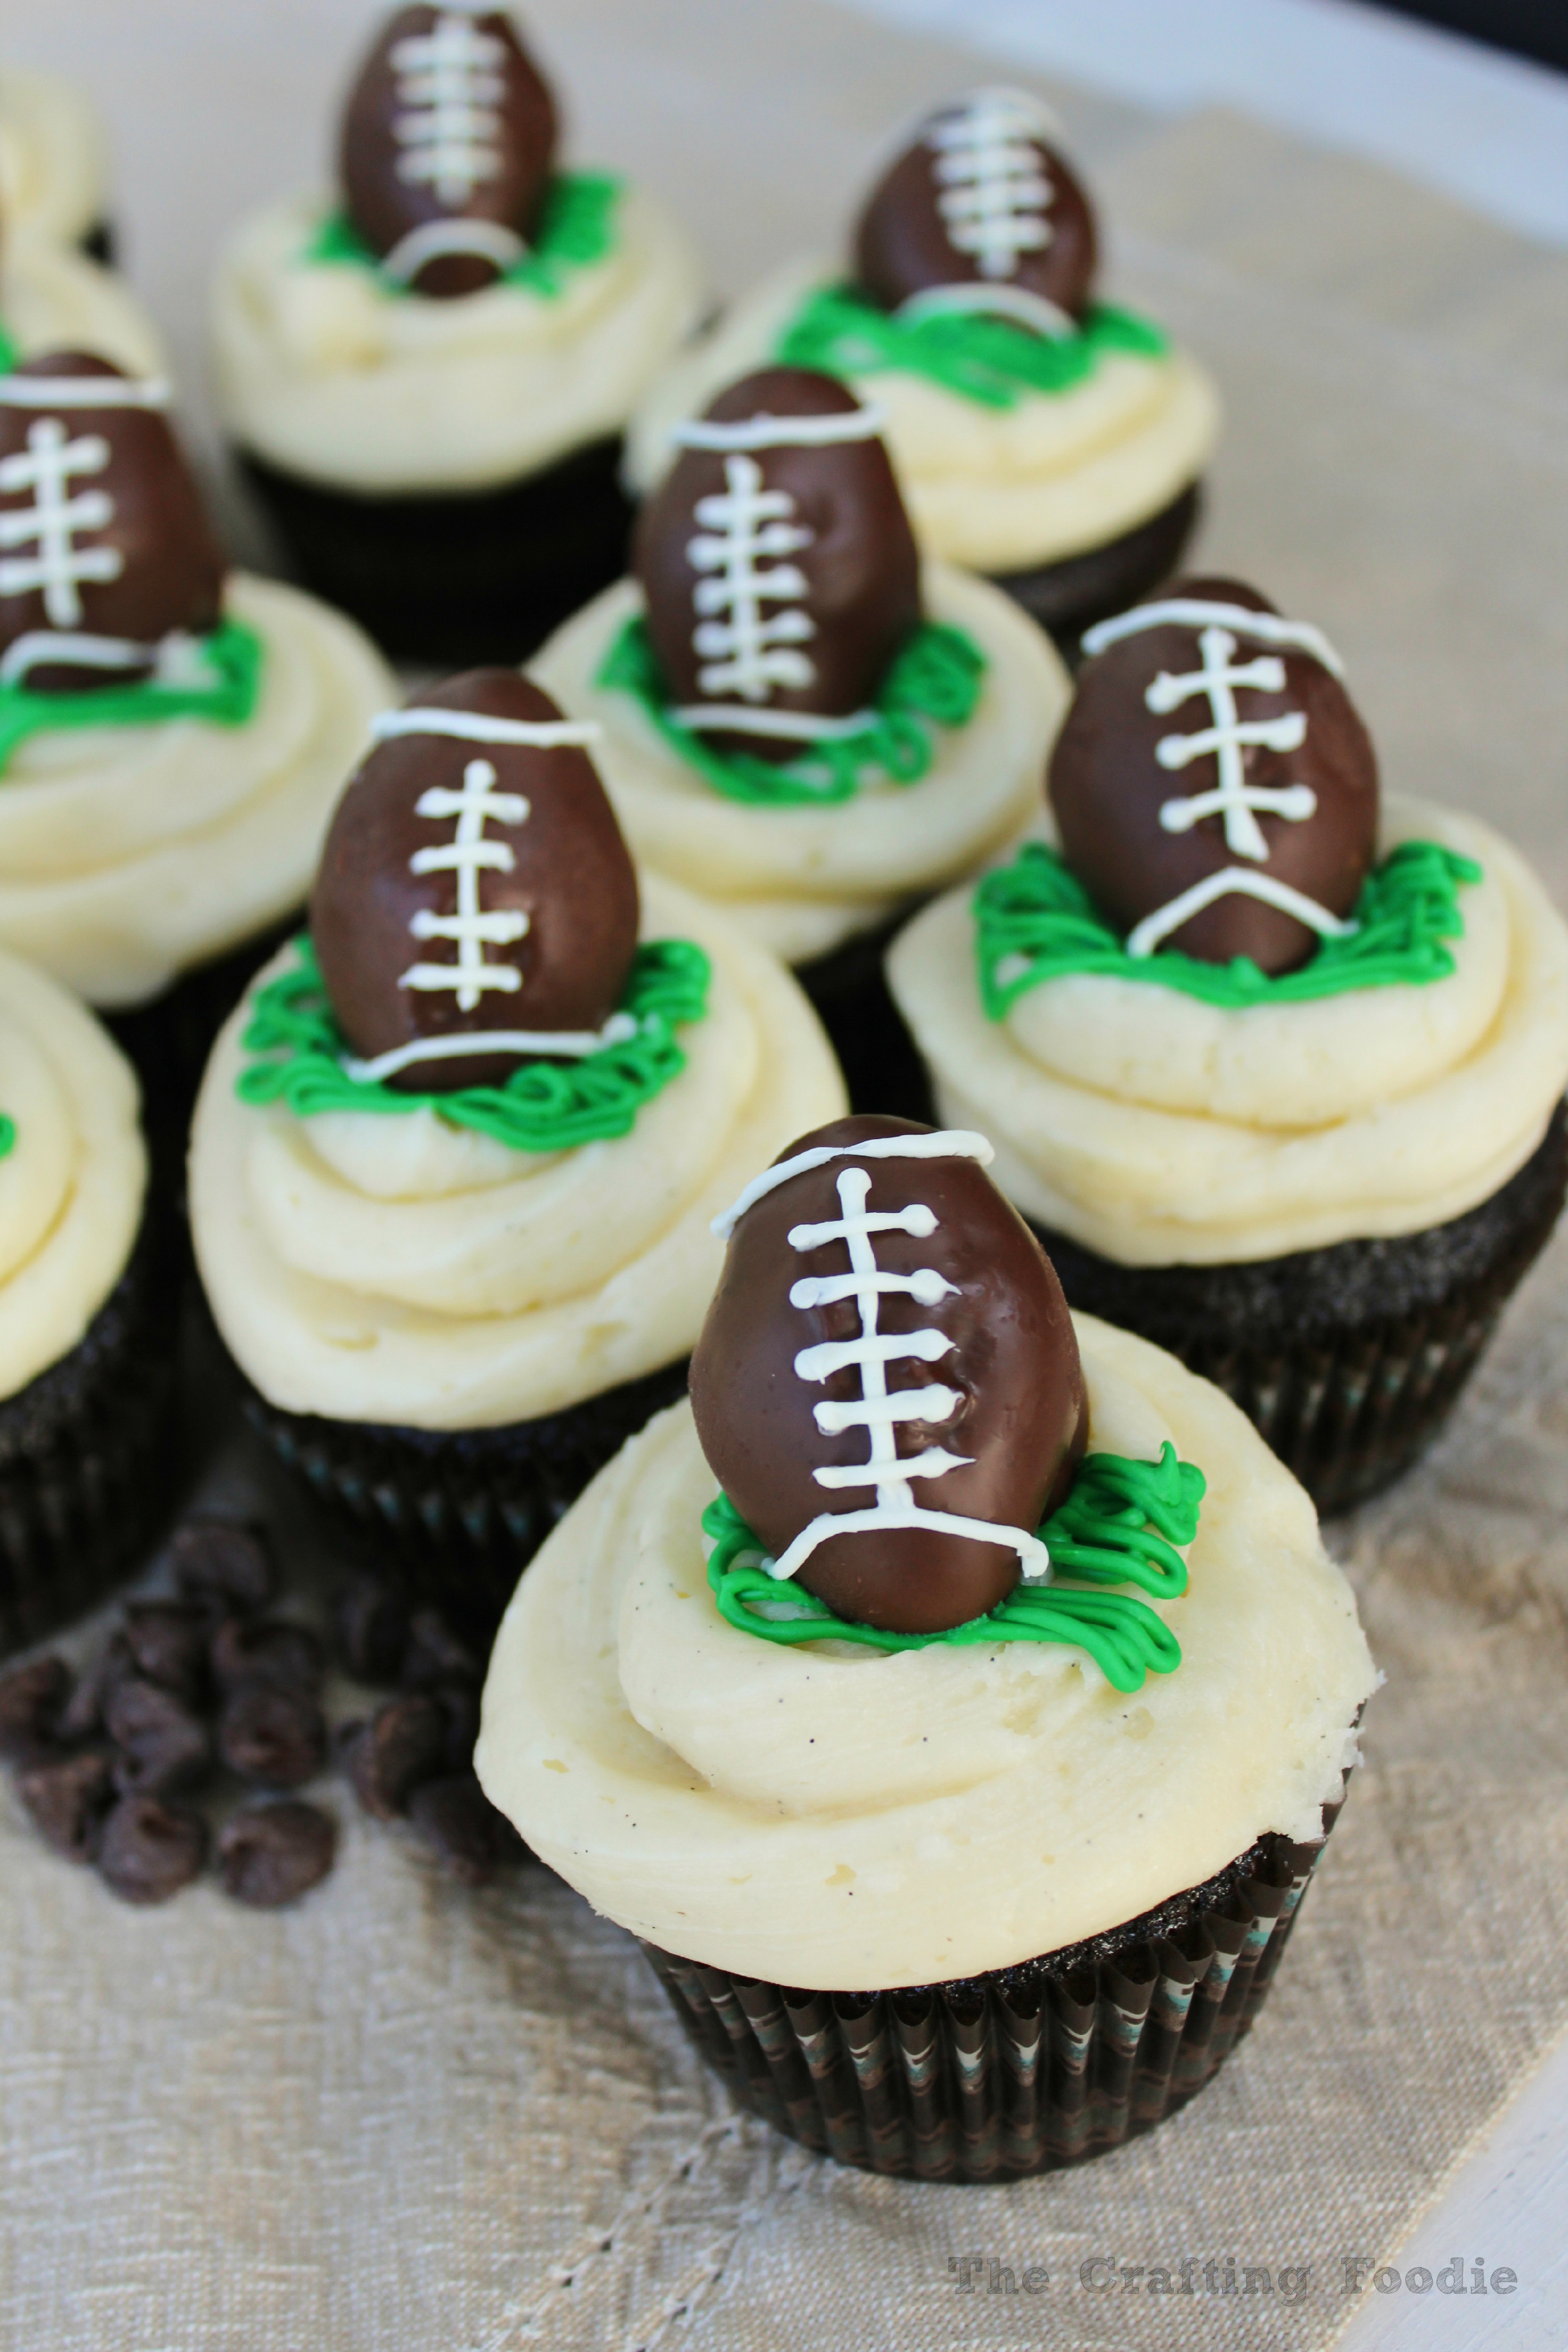 Chocolate Cupcakes Topped With Football Cake Pops